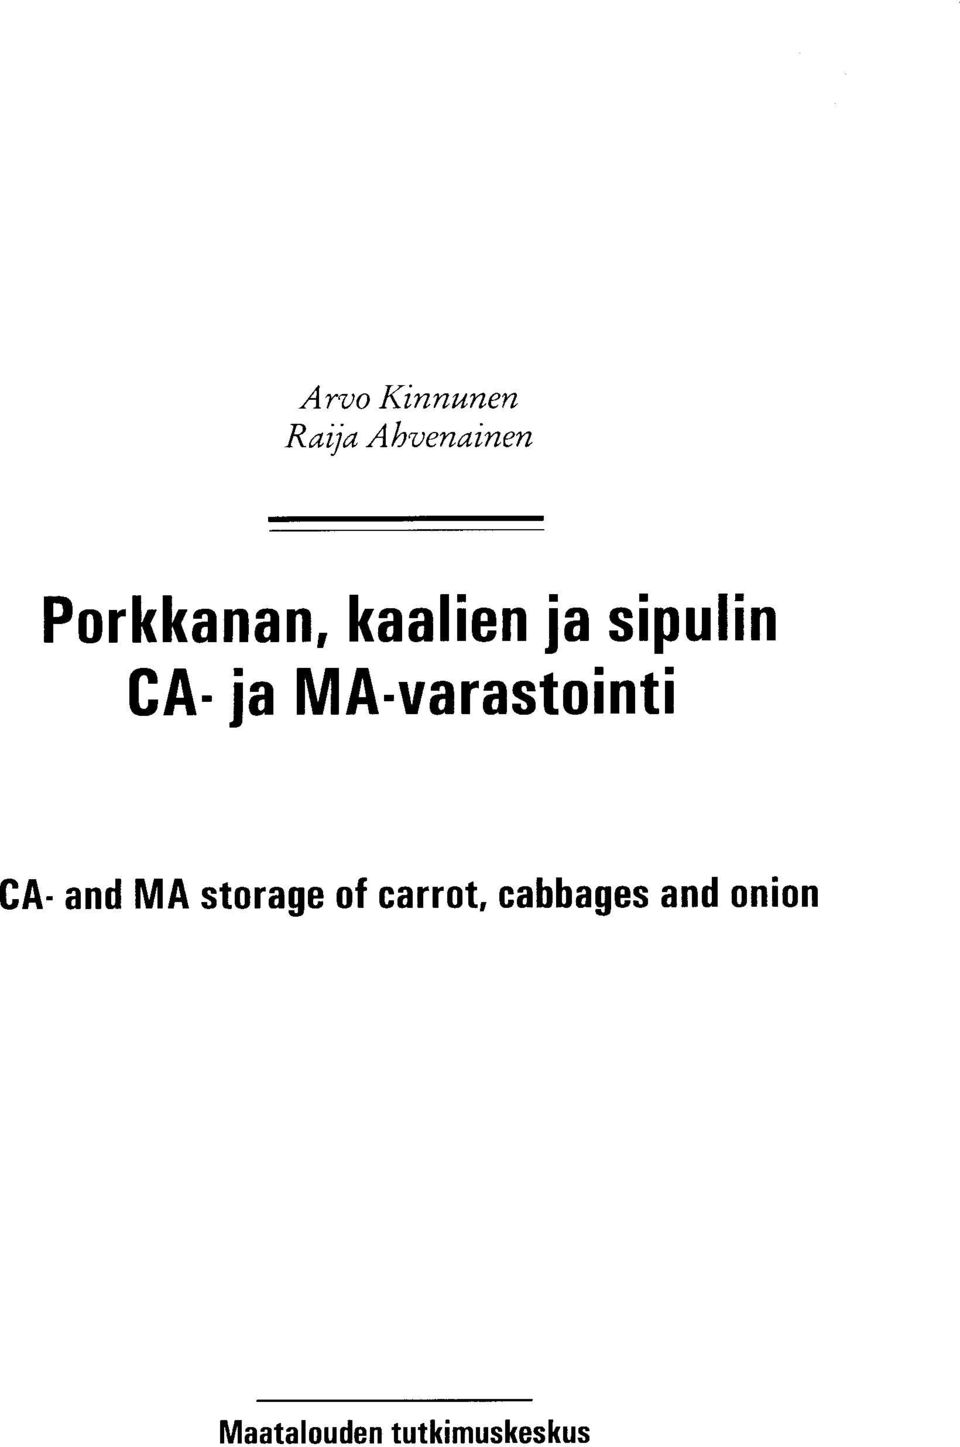 MA-varastointi CA- and MA storage of